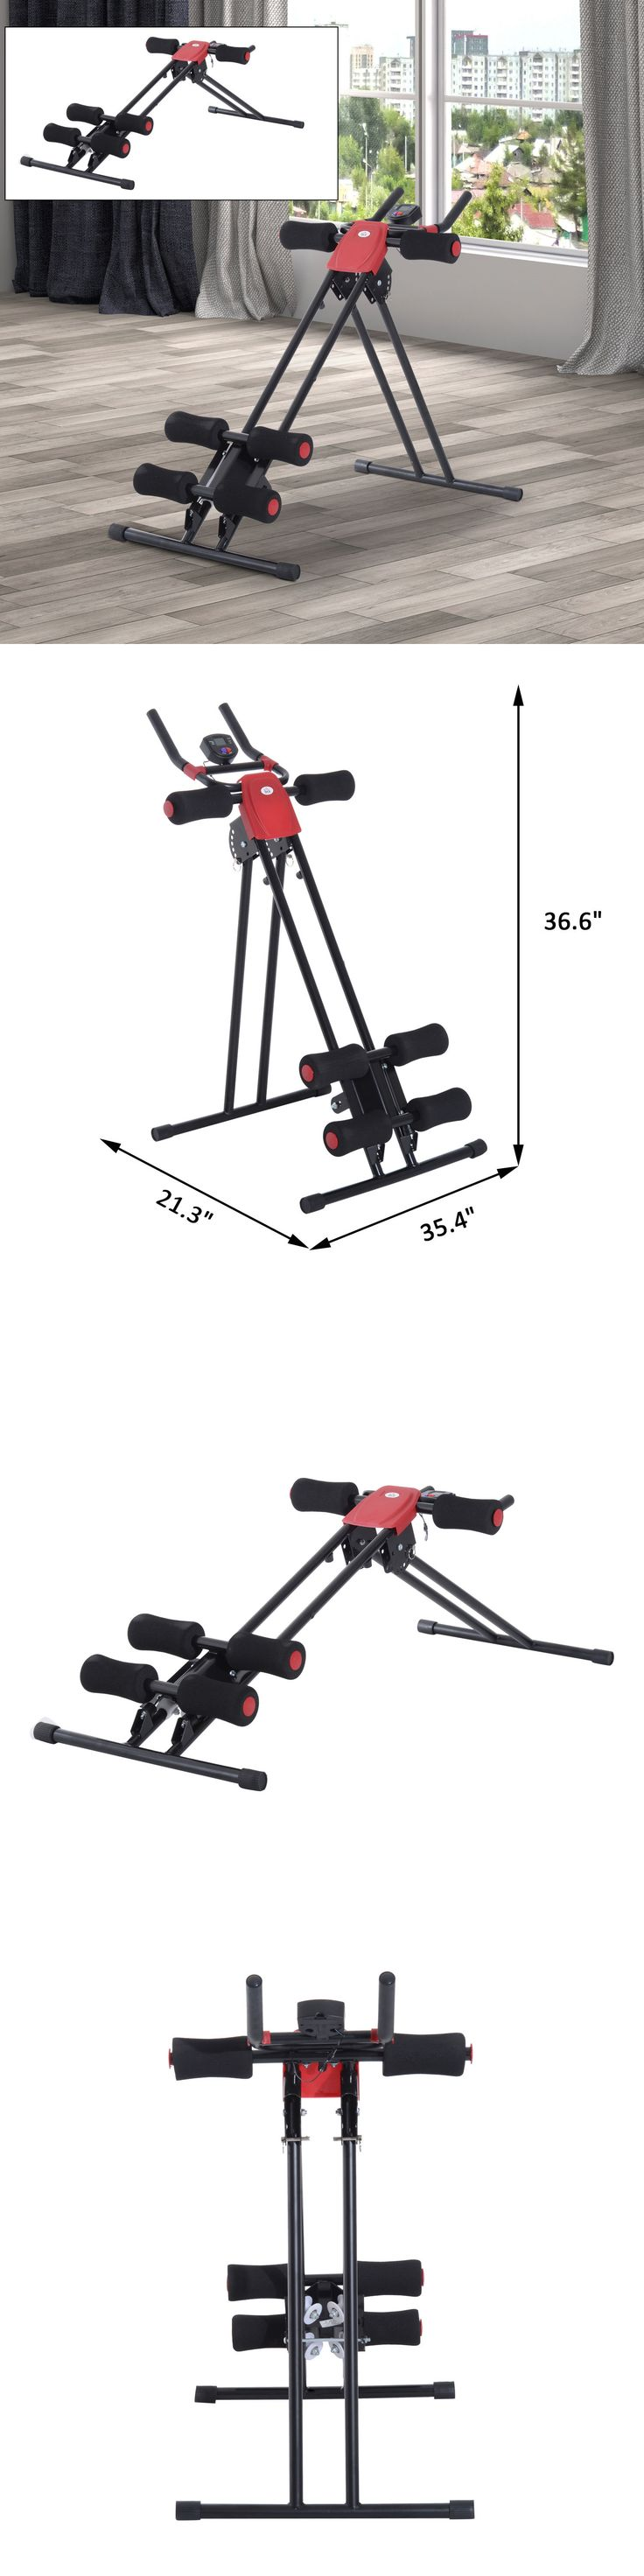 Abdominal Exercisers 15274: Ab Cruncher Abdominal Six Pack Trainer Core Machine Fitness Equipment -> BUY IT NOW ONLY: $55.99 on eBay!